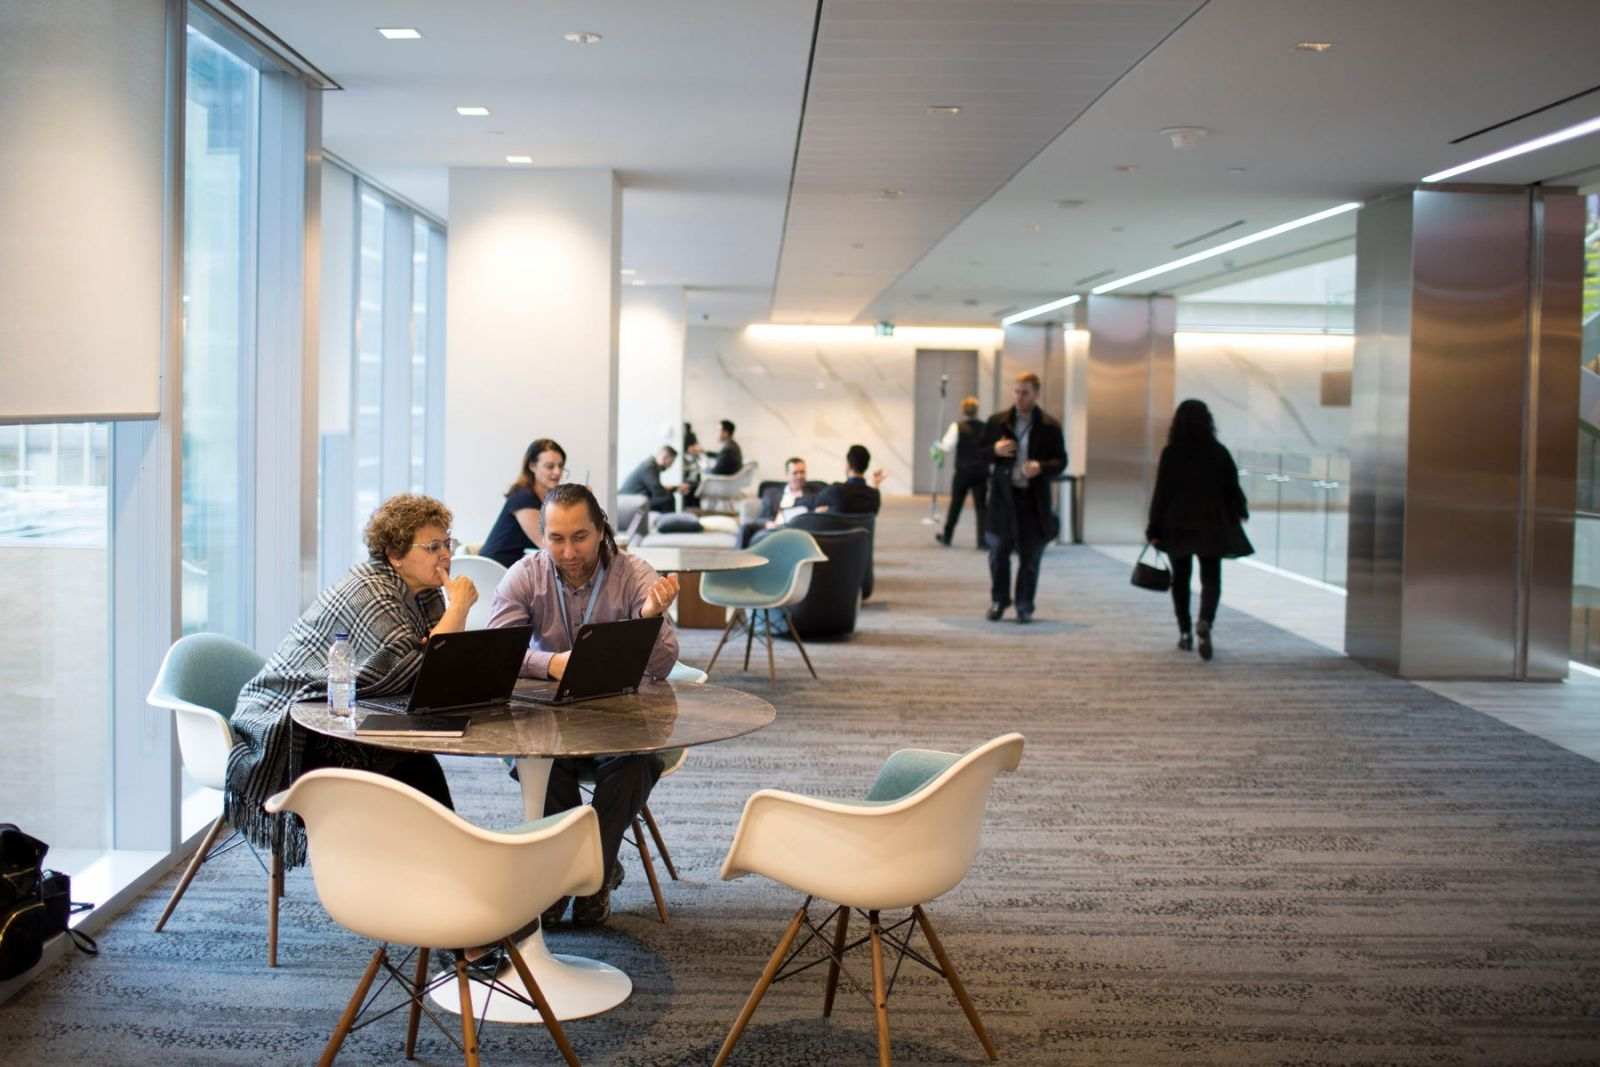 Deloitte Closes 4 Offices, Putting 500 Staff on Work-From-Home Contracts